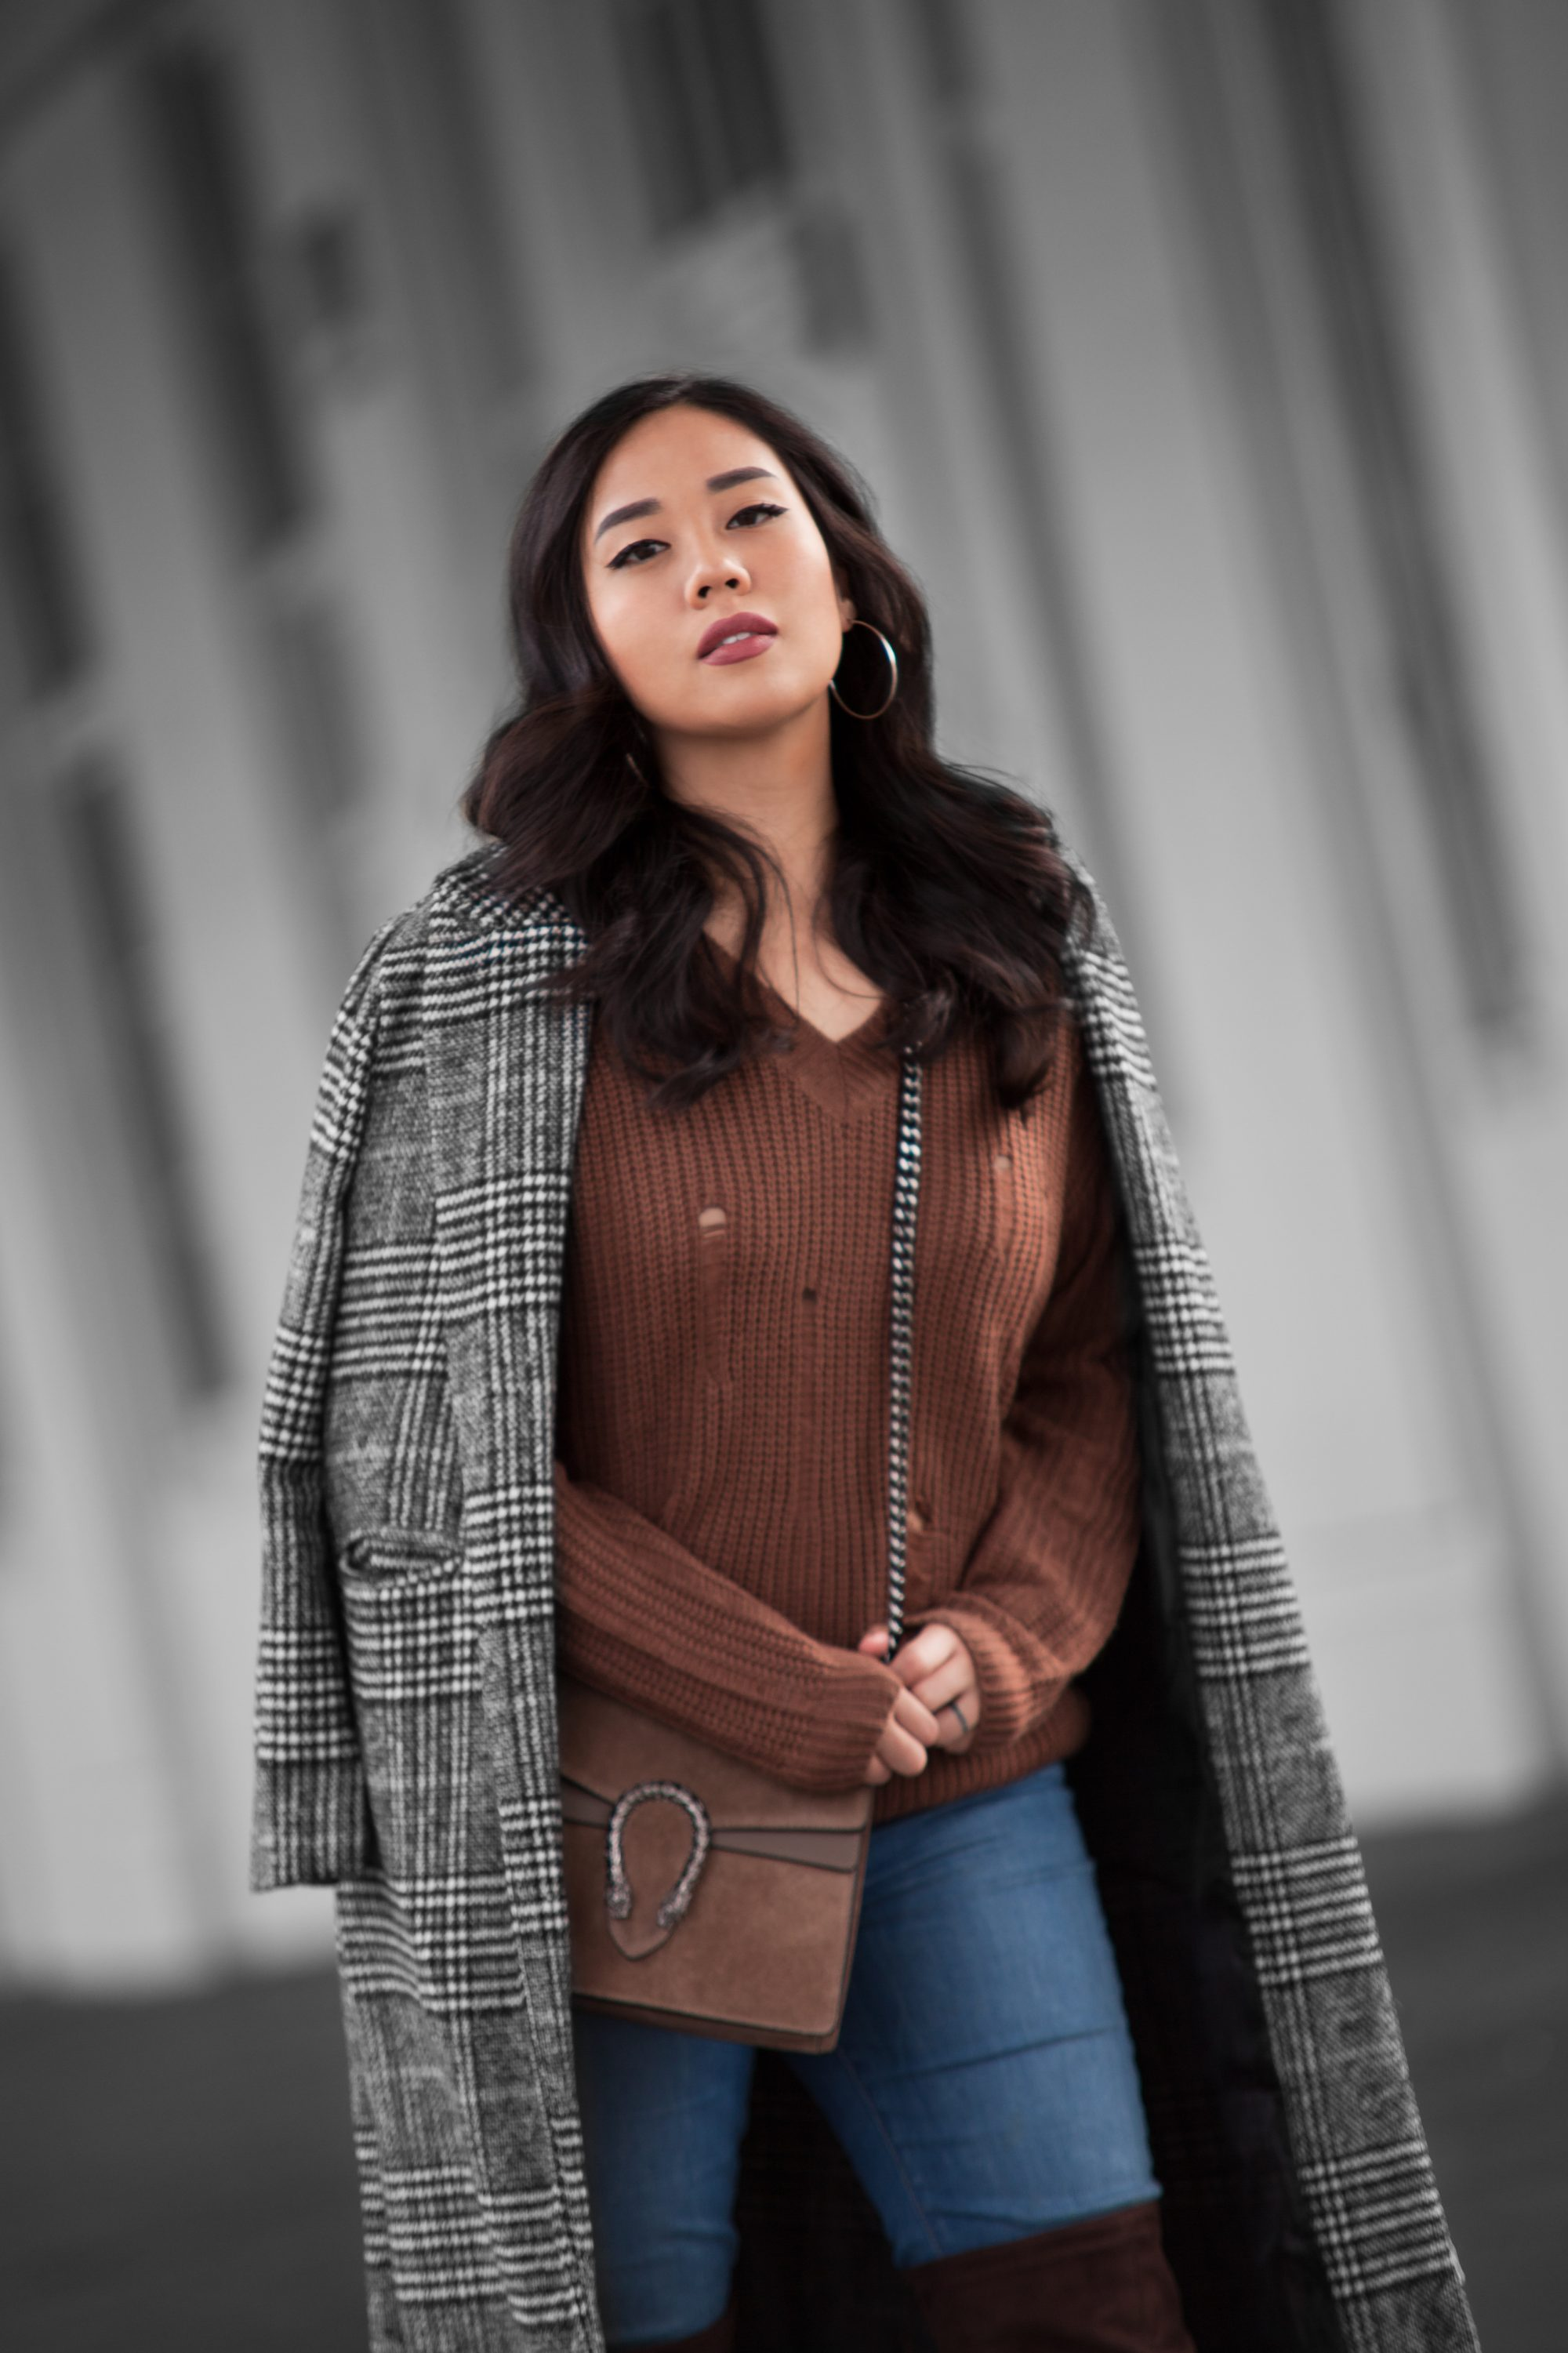 Brown is the perfect warm color for wintertime, which makes it perfect for sweaters. Get a knitted oversized sweater in a camel or teddy brown and you can pair it with a nice wash of blue jeans or distressed black denim and you're good to go.